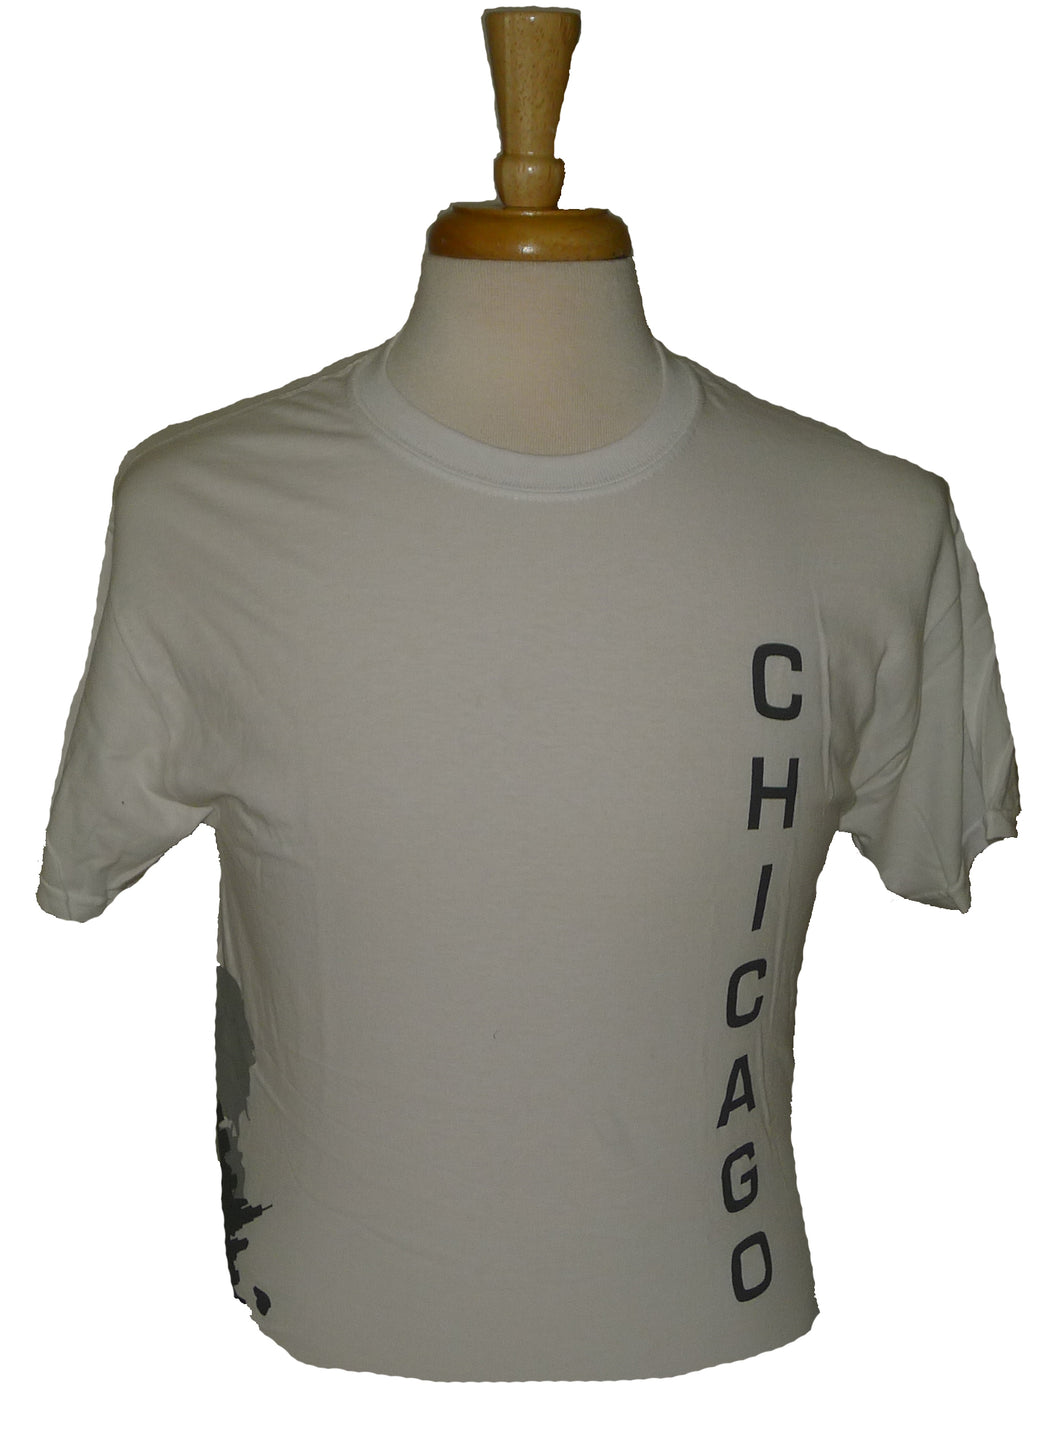 Gildan Chicago Matchcup Race T Shirt White/Grey